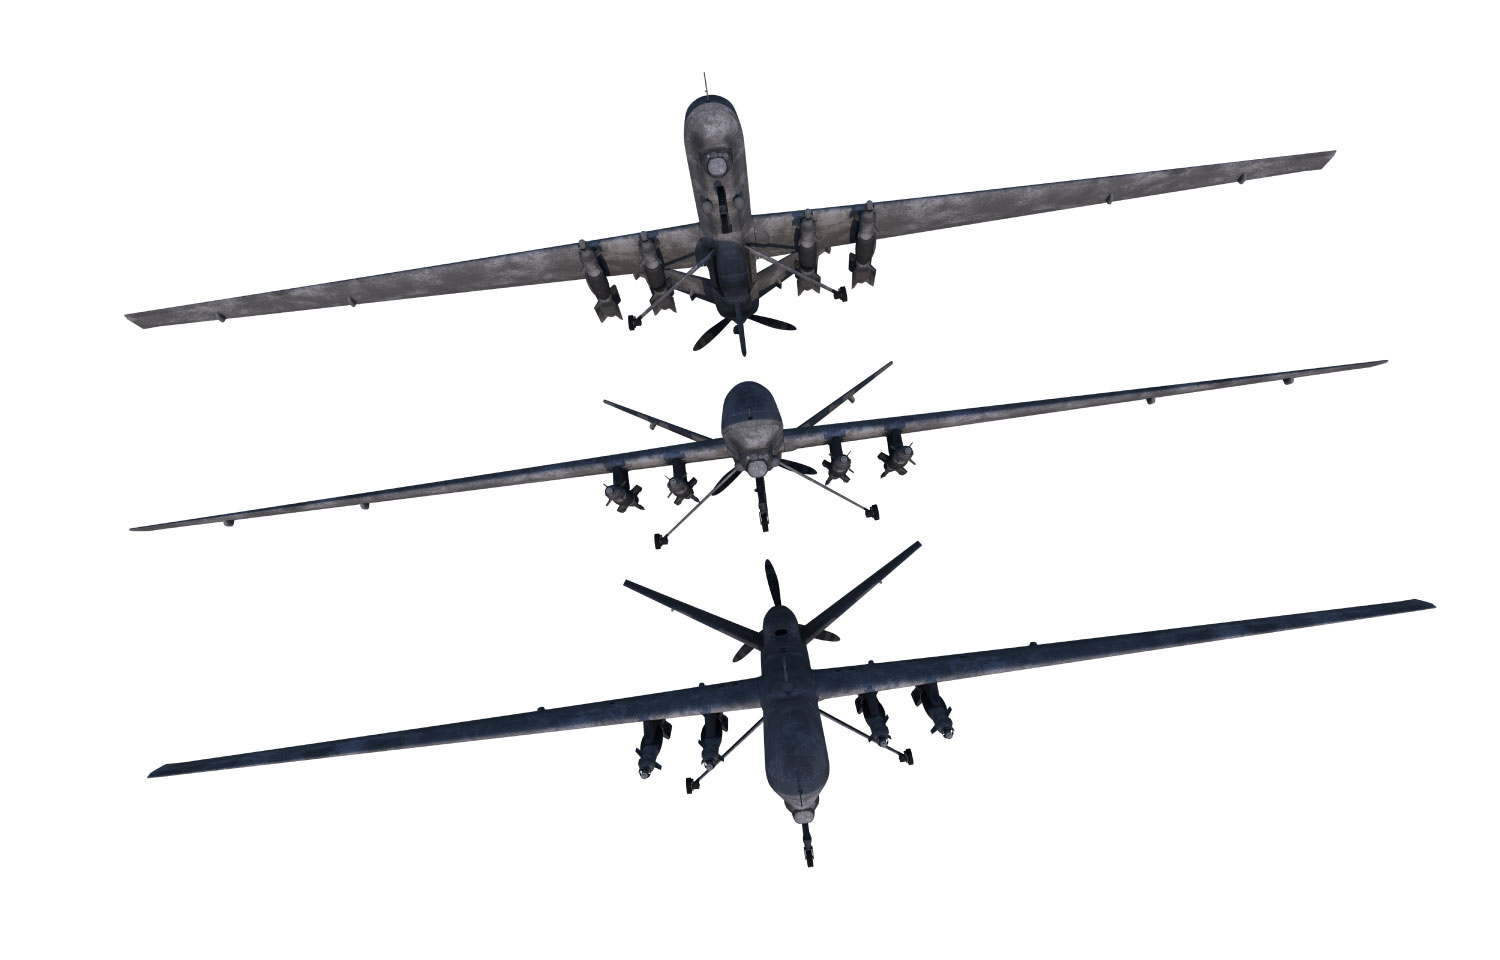 multiple_drones_autonomous_weapons